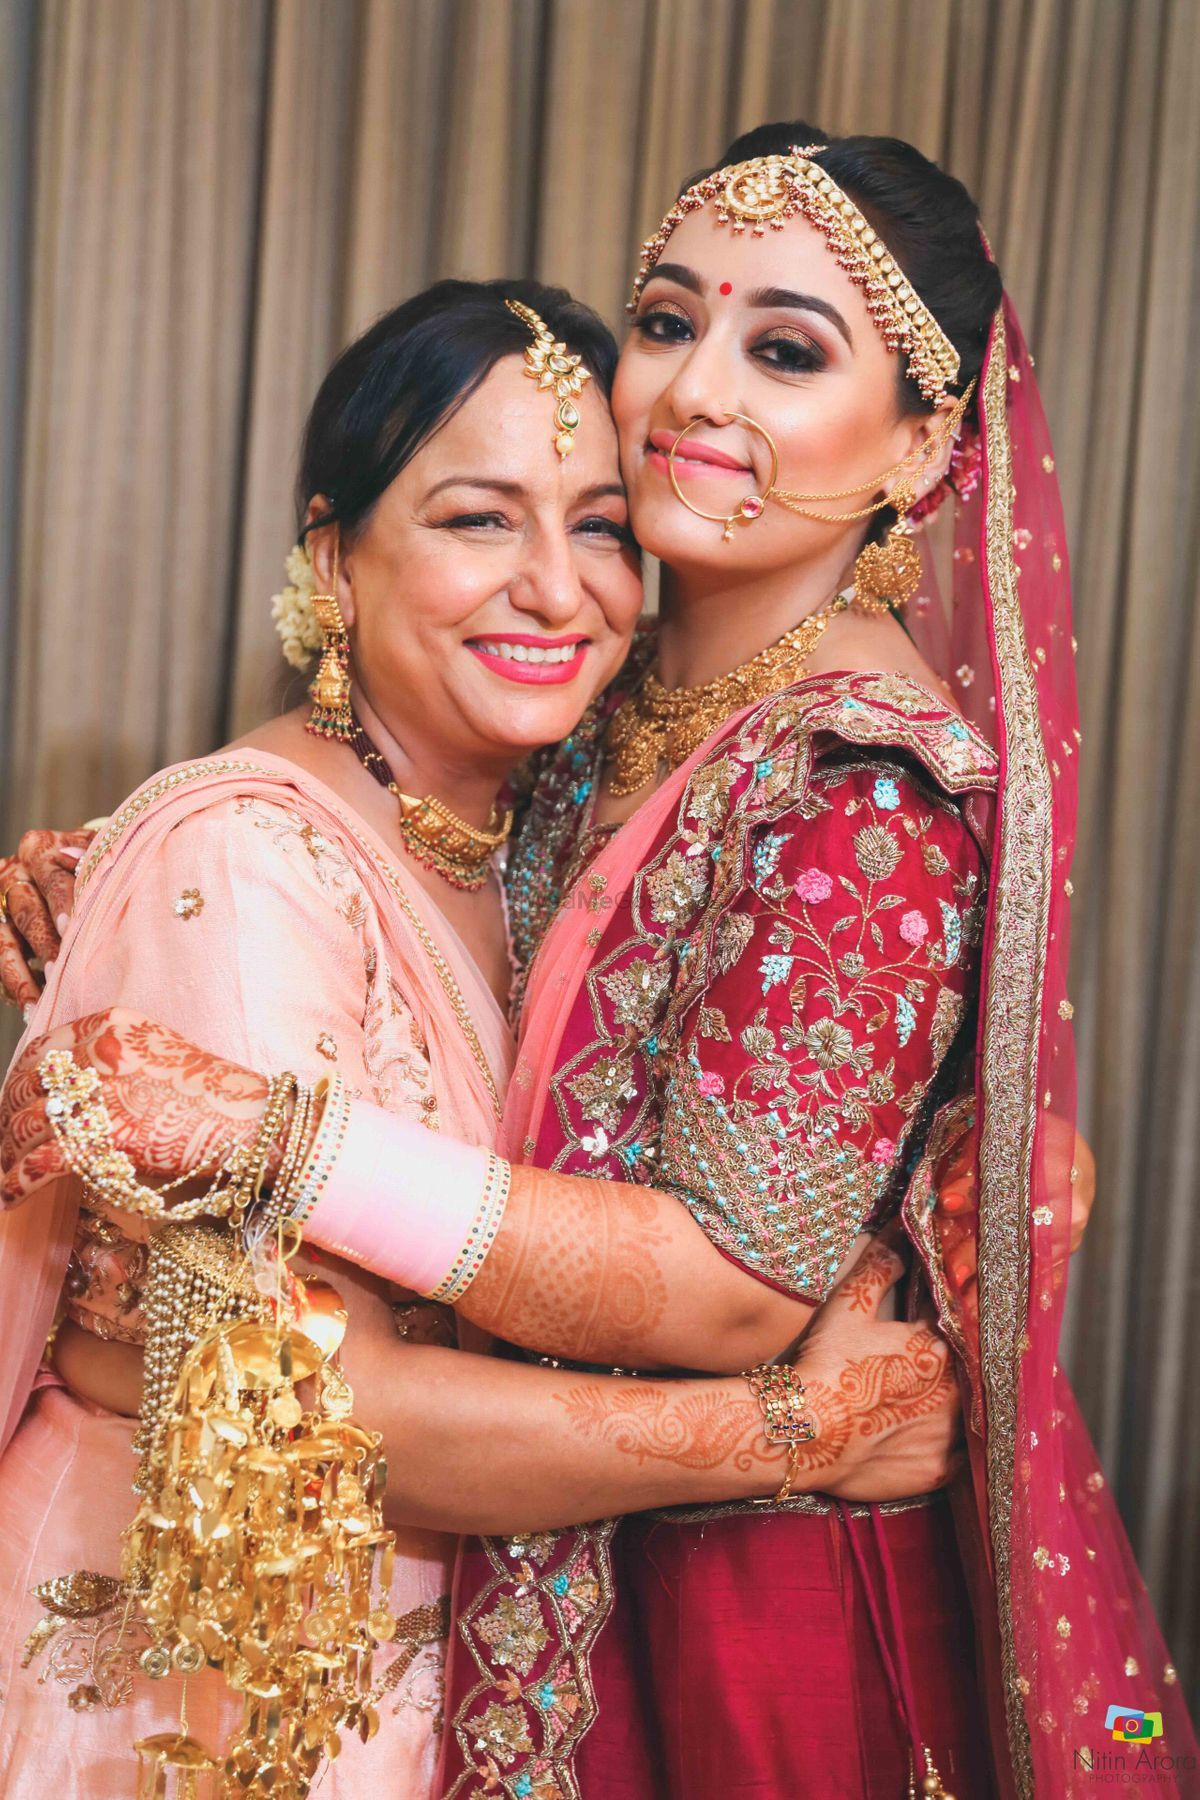 Makeup ideas for the bride's mother